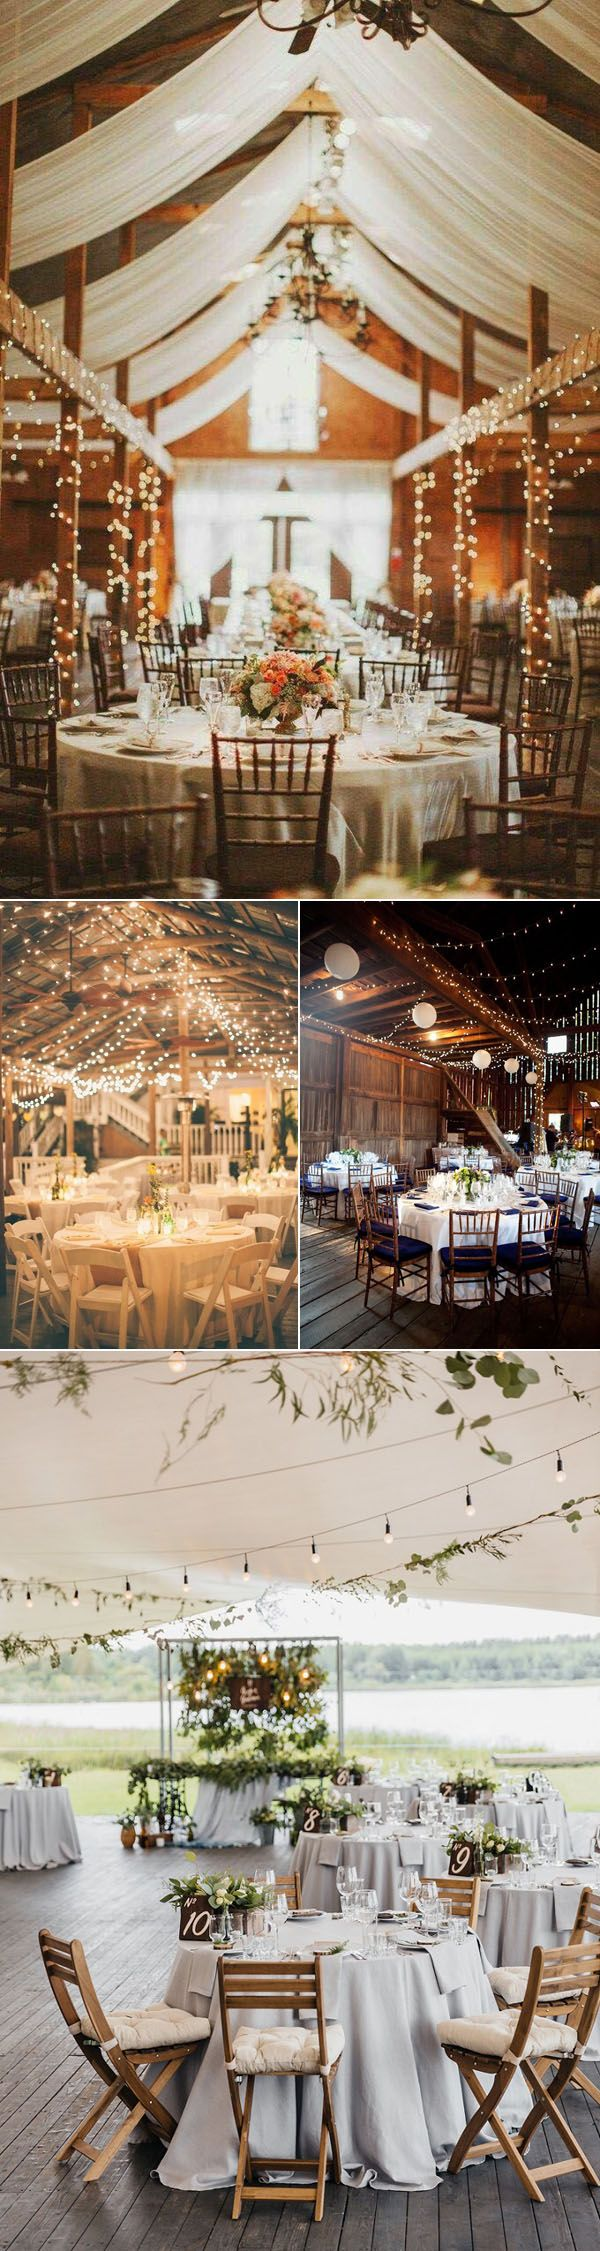 Best 25 rustic wedding decorations ideas on pinterest country 32 rustic wedding decoration ideas to inspire your big day junglespirit